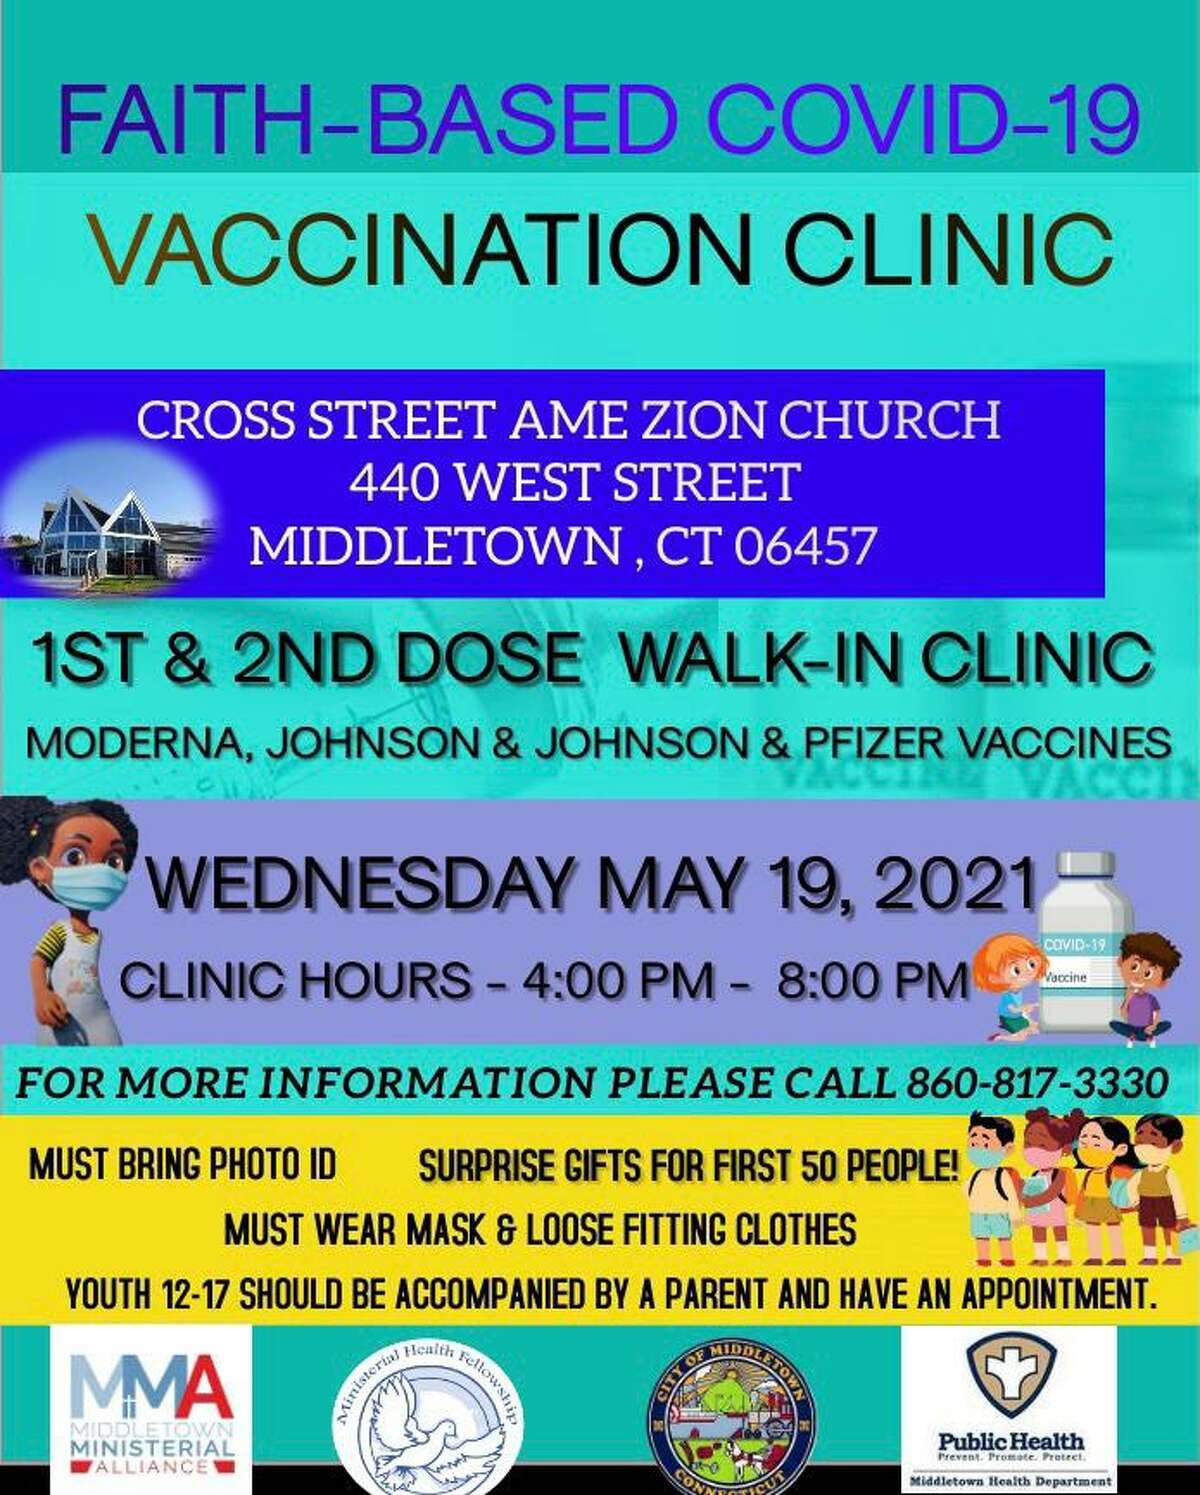 Cross Street AME Zion Church, 440 West St., Middletown, will be offering a COVID-19 vaccination clinic for those who need their first or second shots Wednesday.